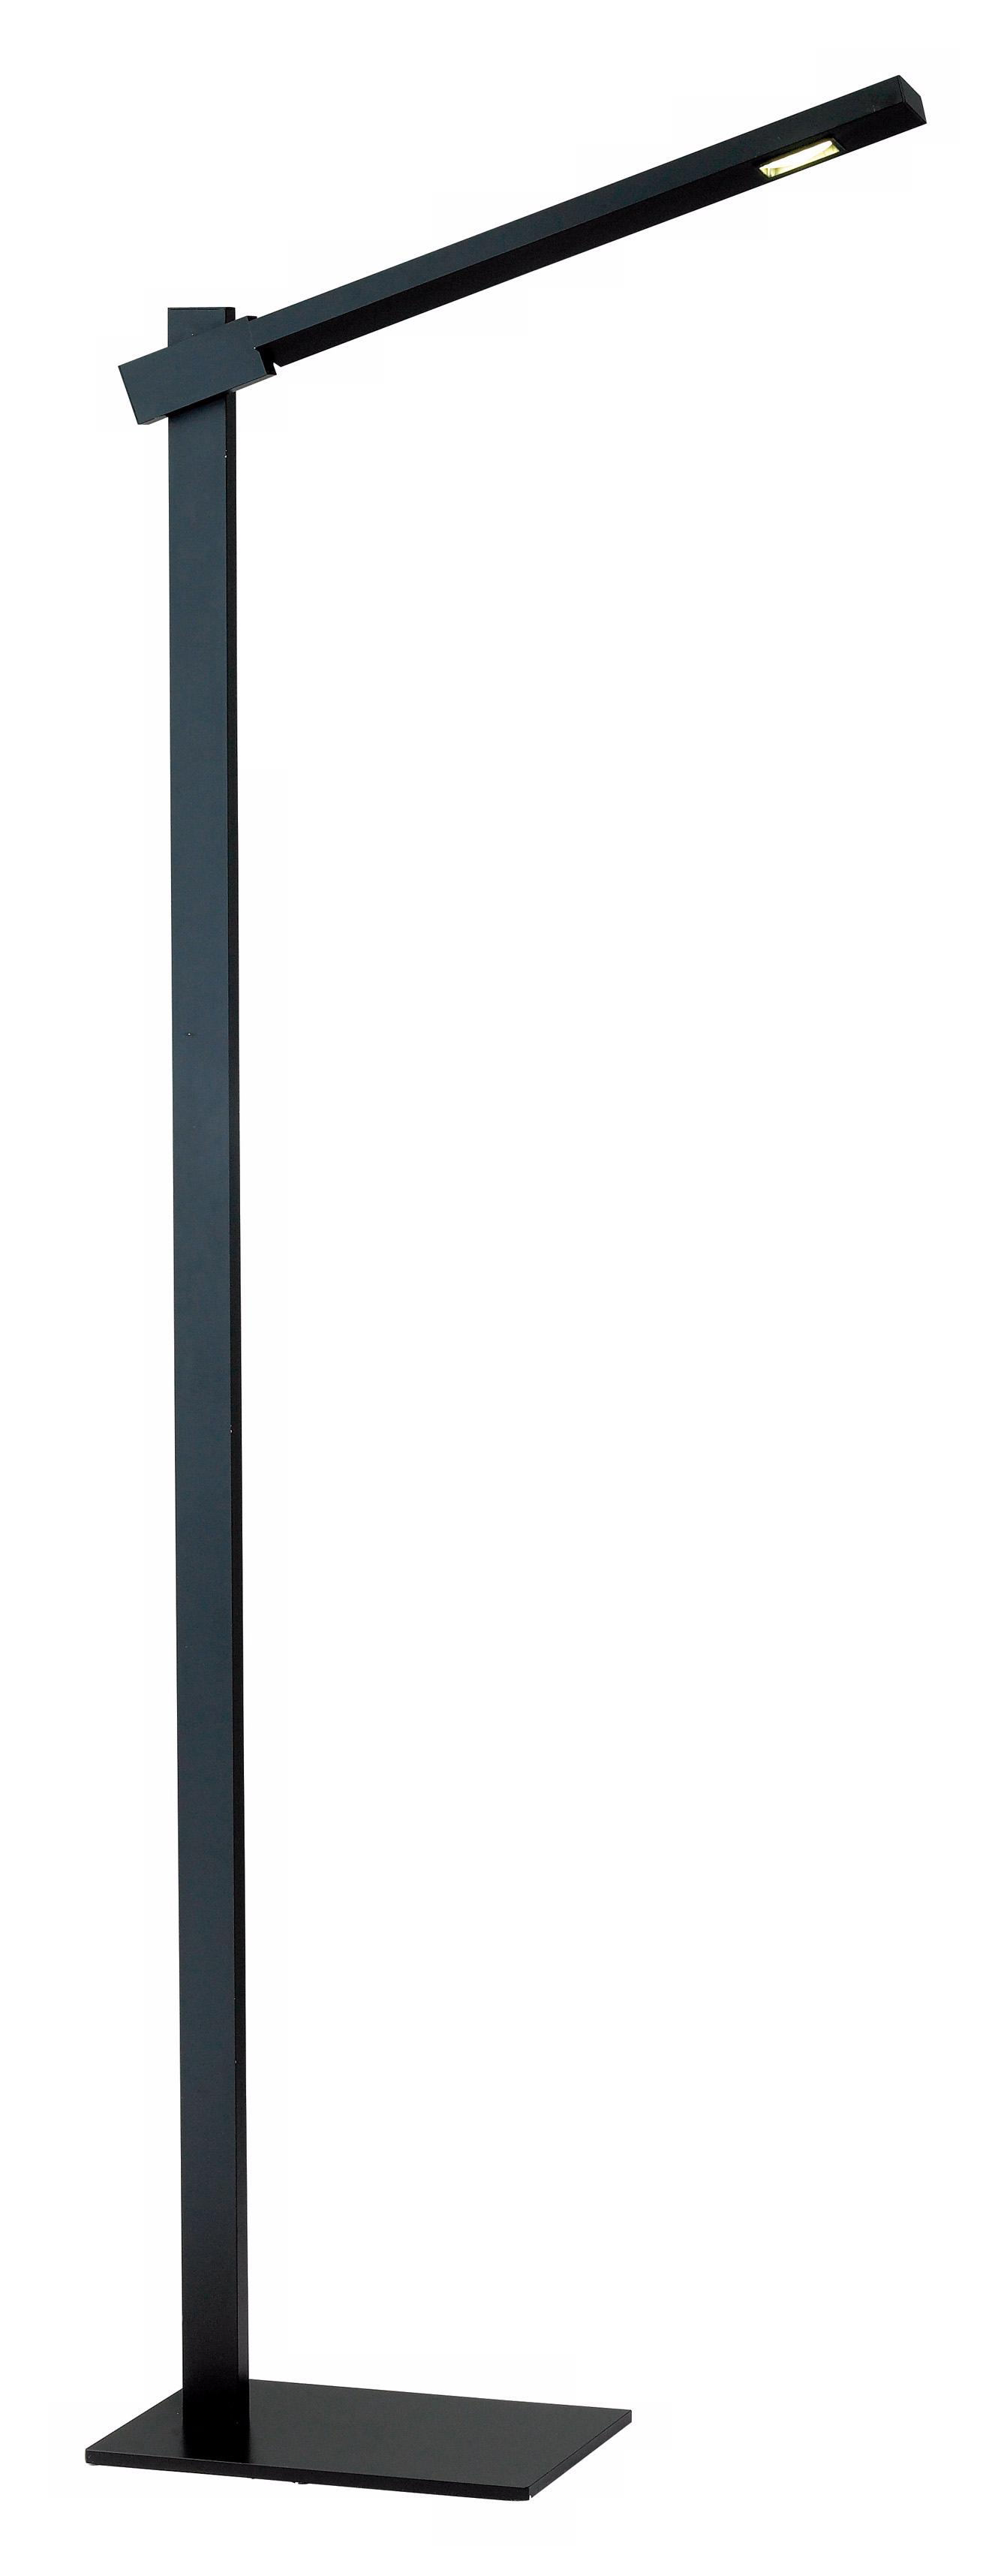 Reach Black LED Adjustable Floor Lamp (M1249)